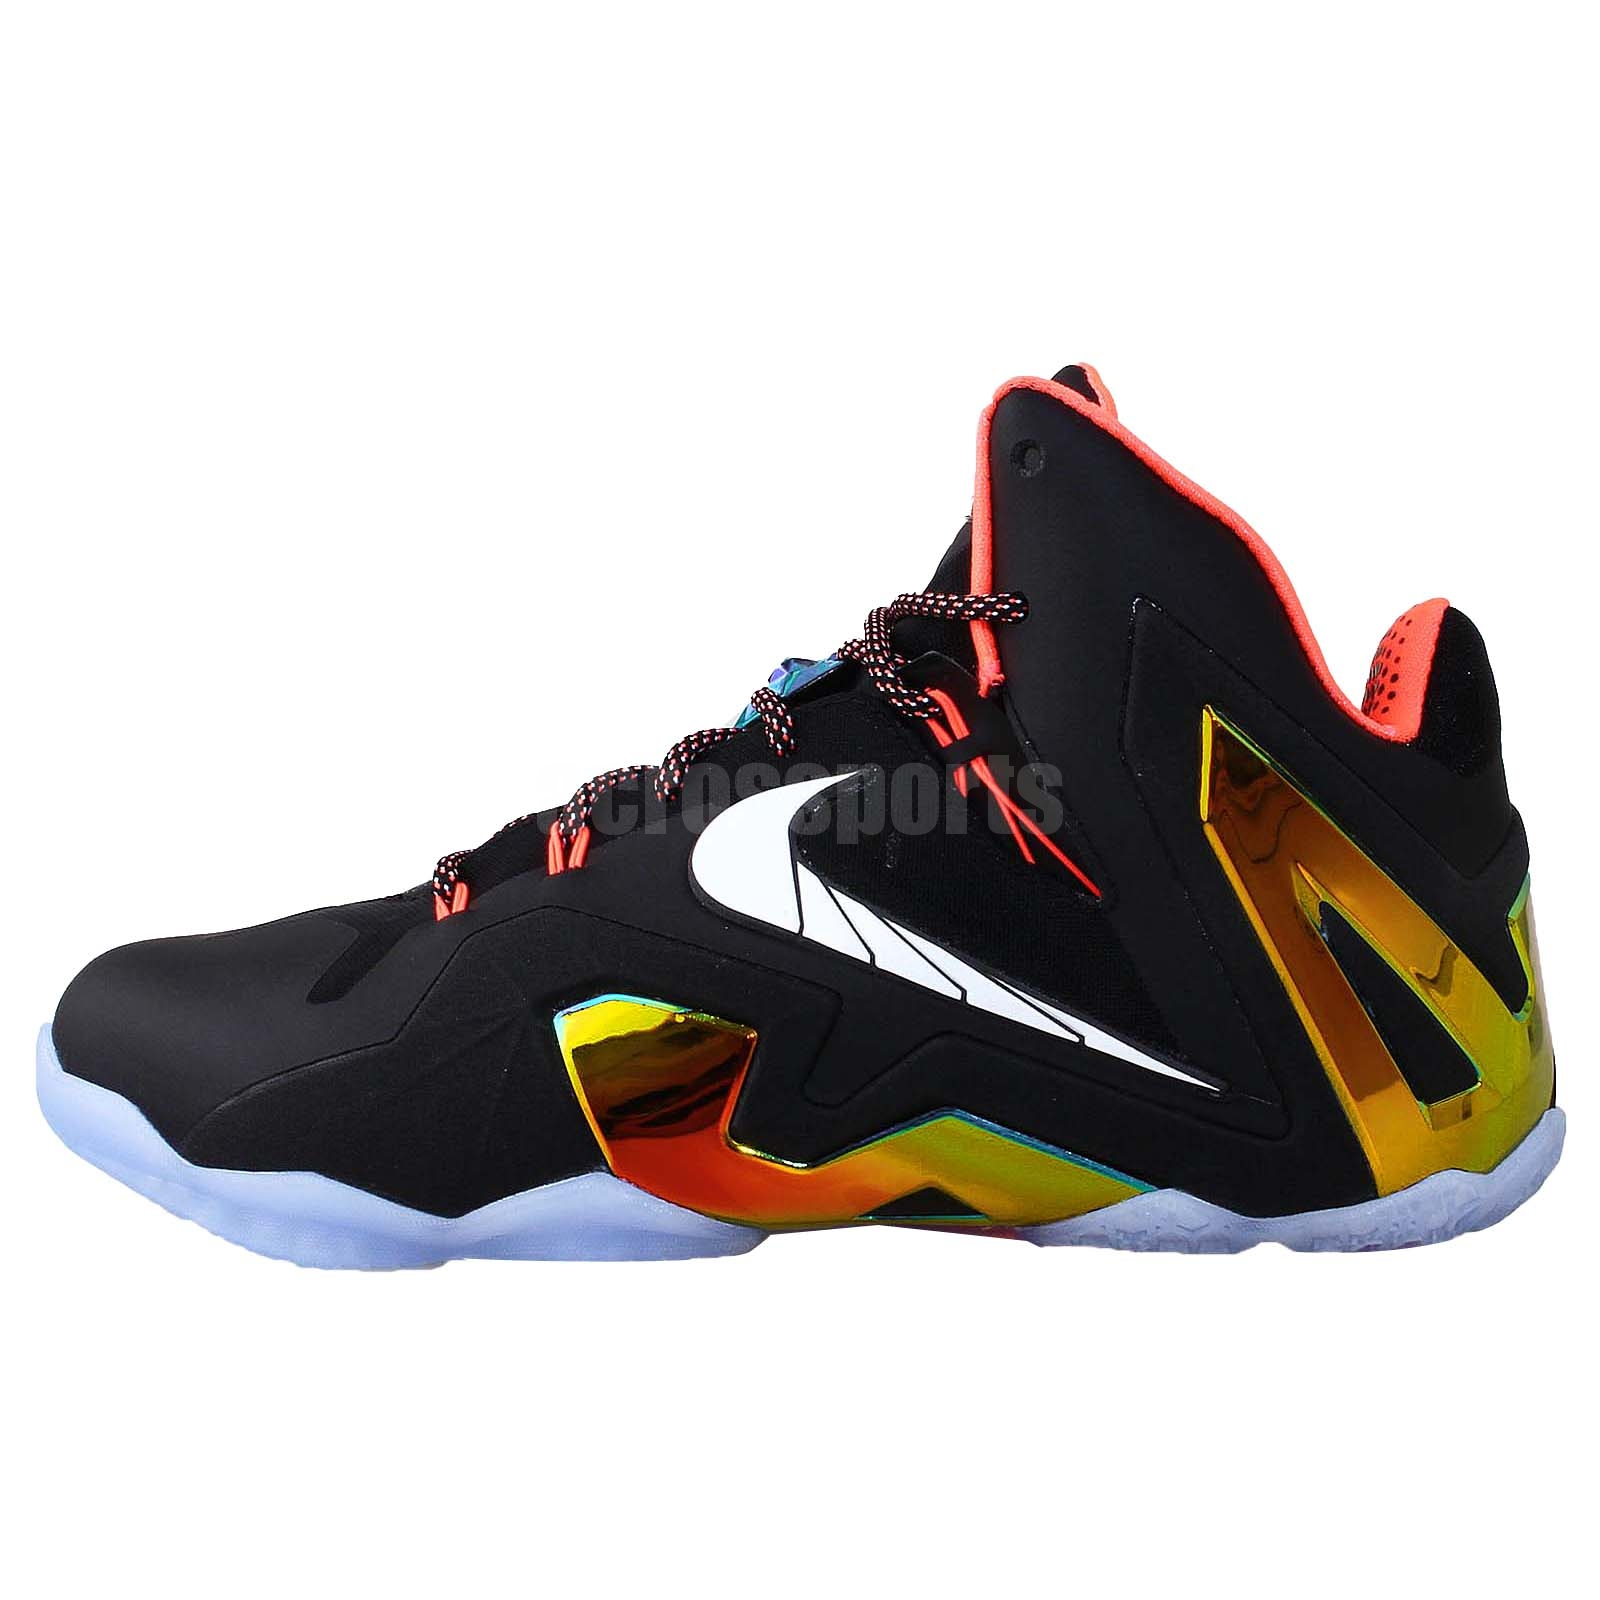 nike lebron xi elite 11 king james gold collection 2014